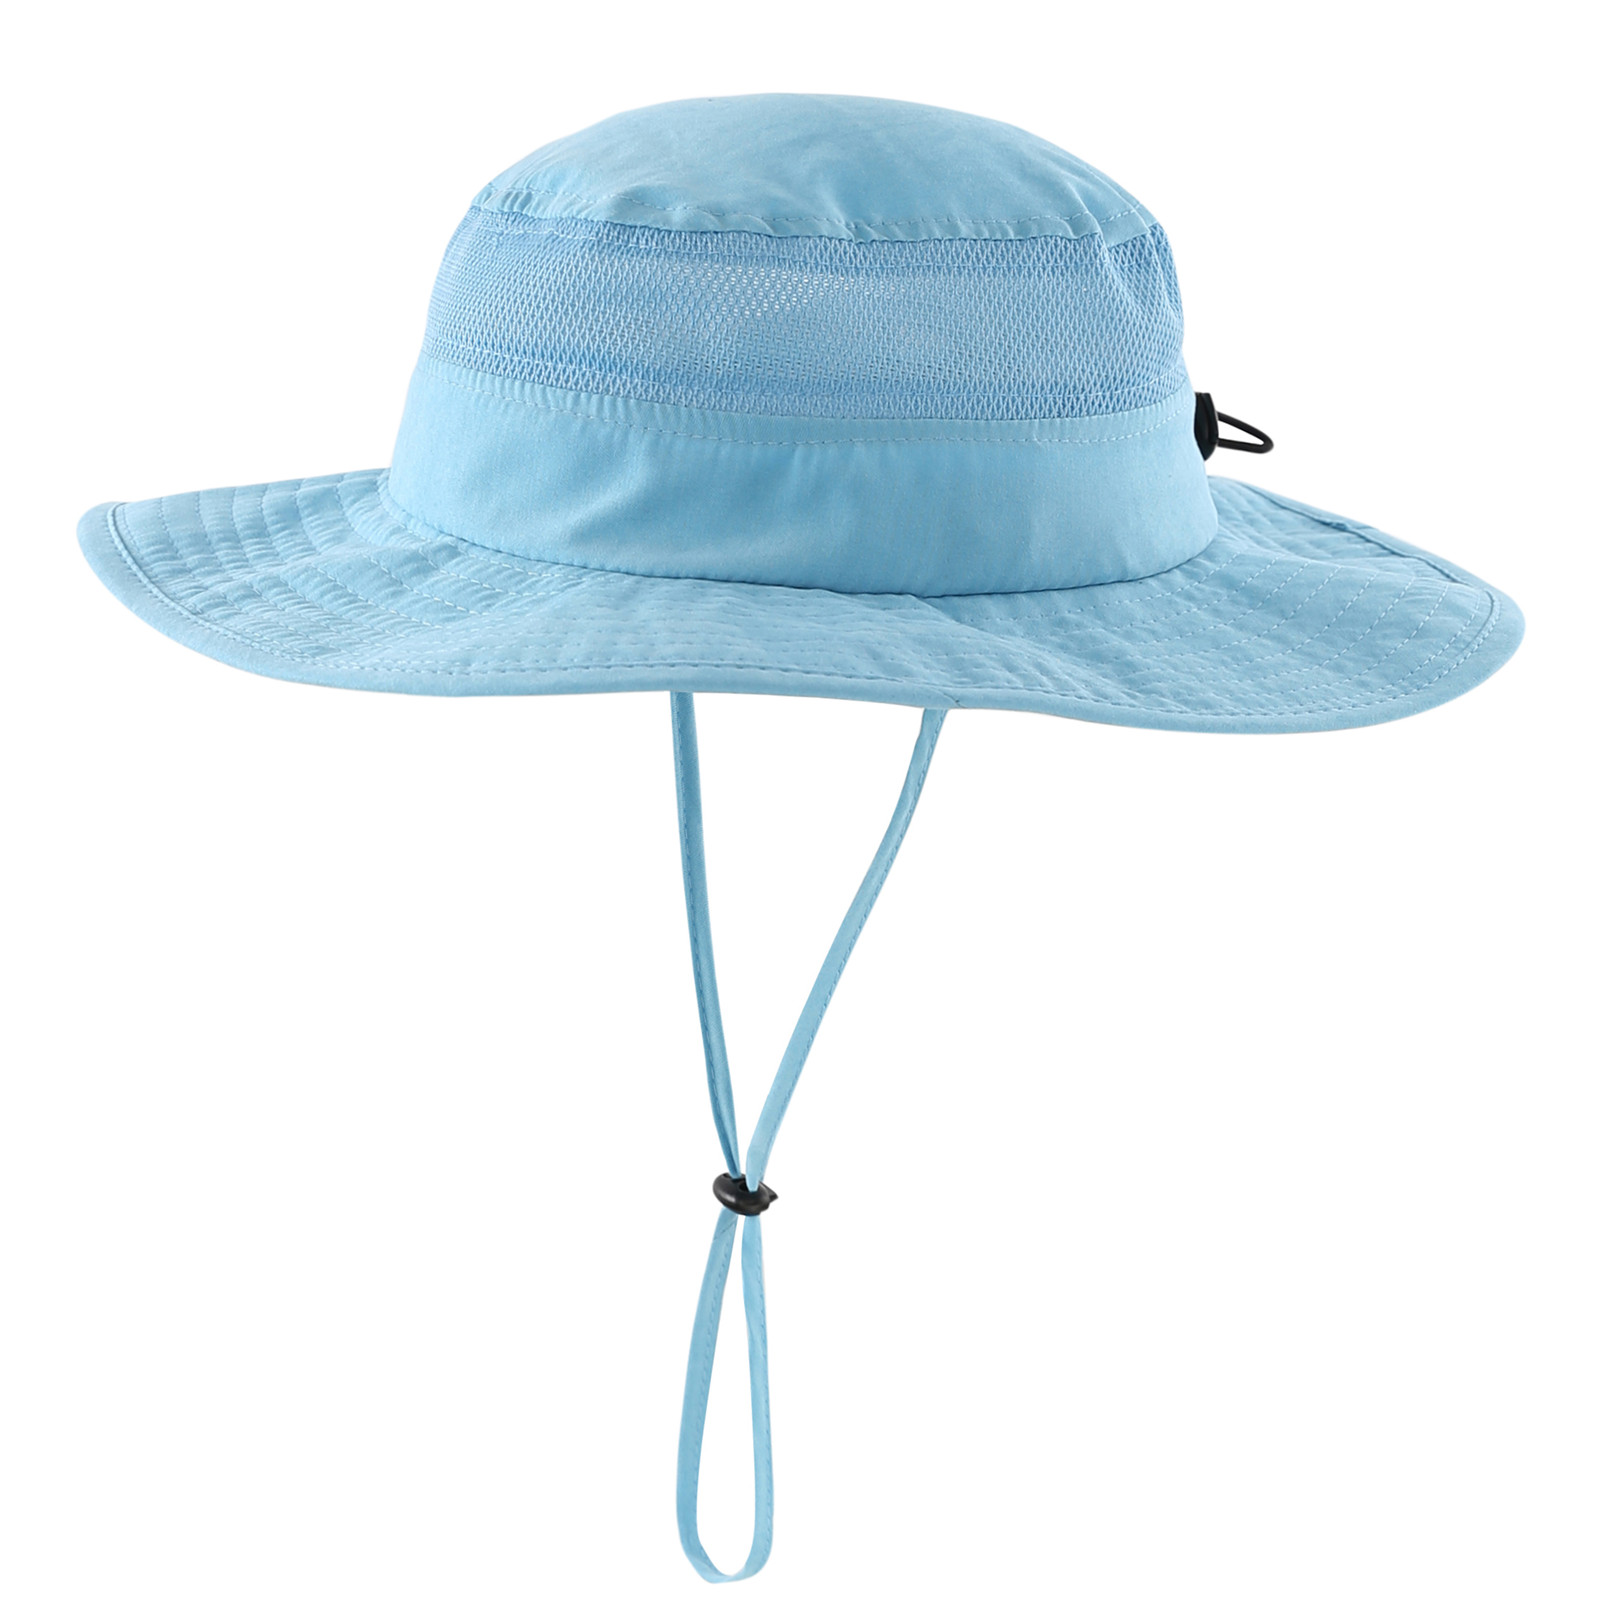 Adjustable with Strap for Baby and Toddler Jan /& Jul Girls Wide Brim UV Protection Sun-Hat